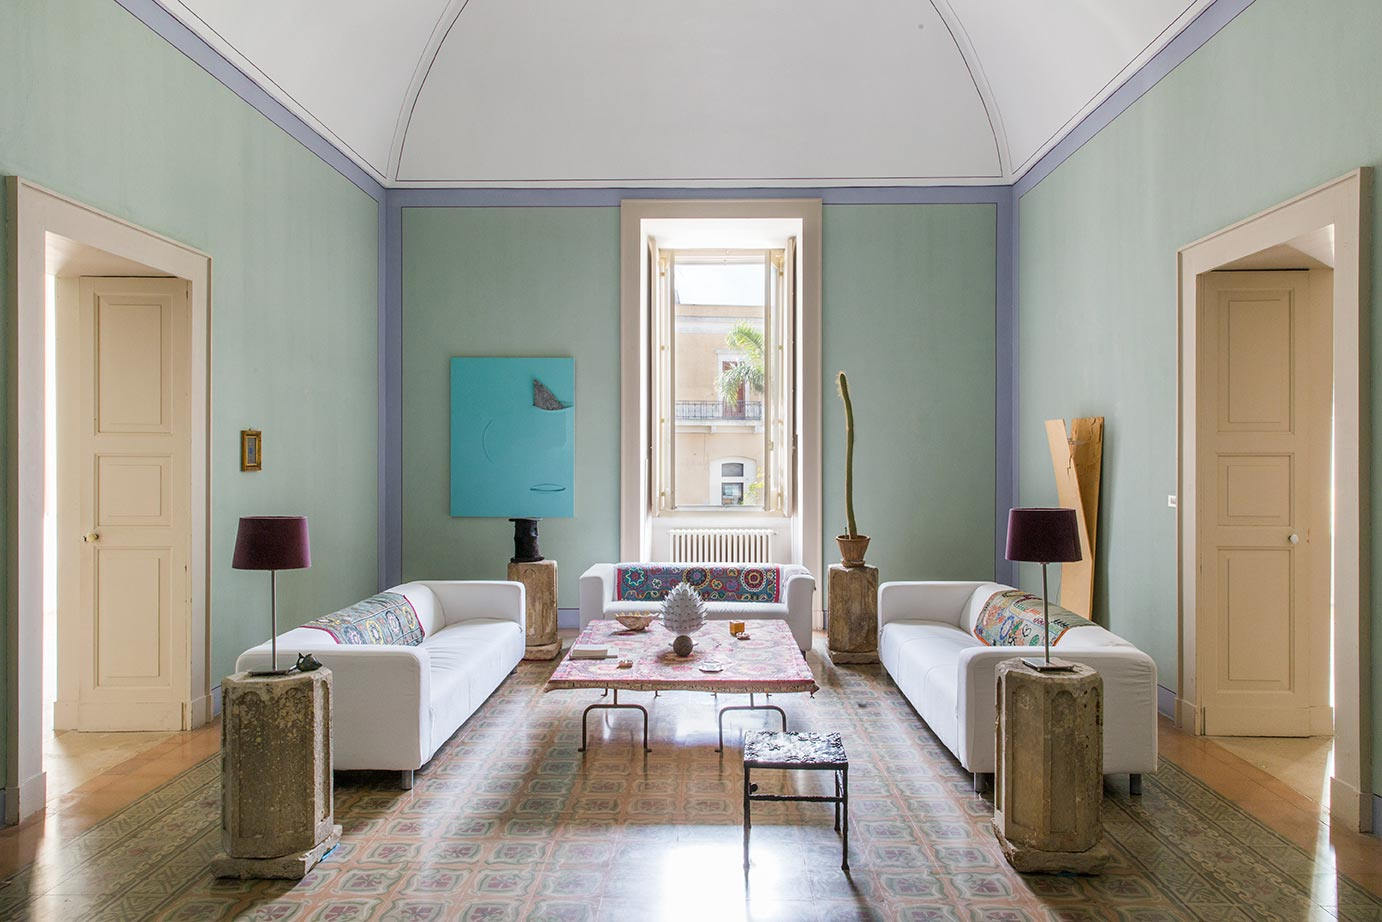 Inspired by Absence: Art and Old-World Architecture at Hotel Palazzo Daniele in Italy